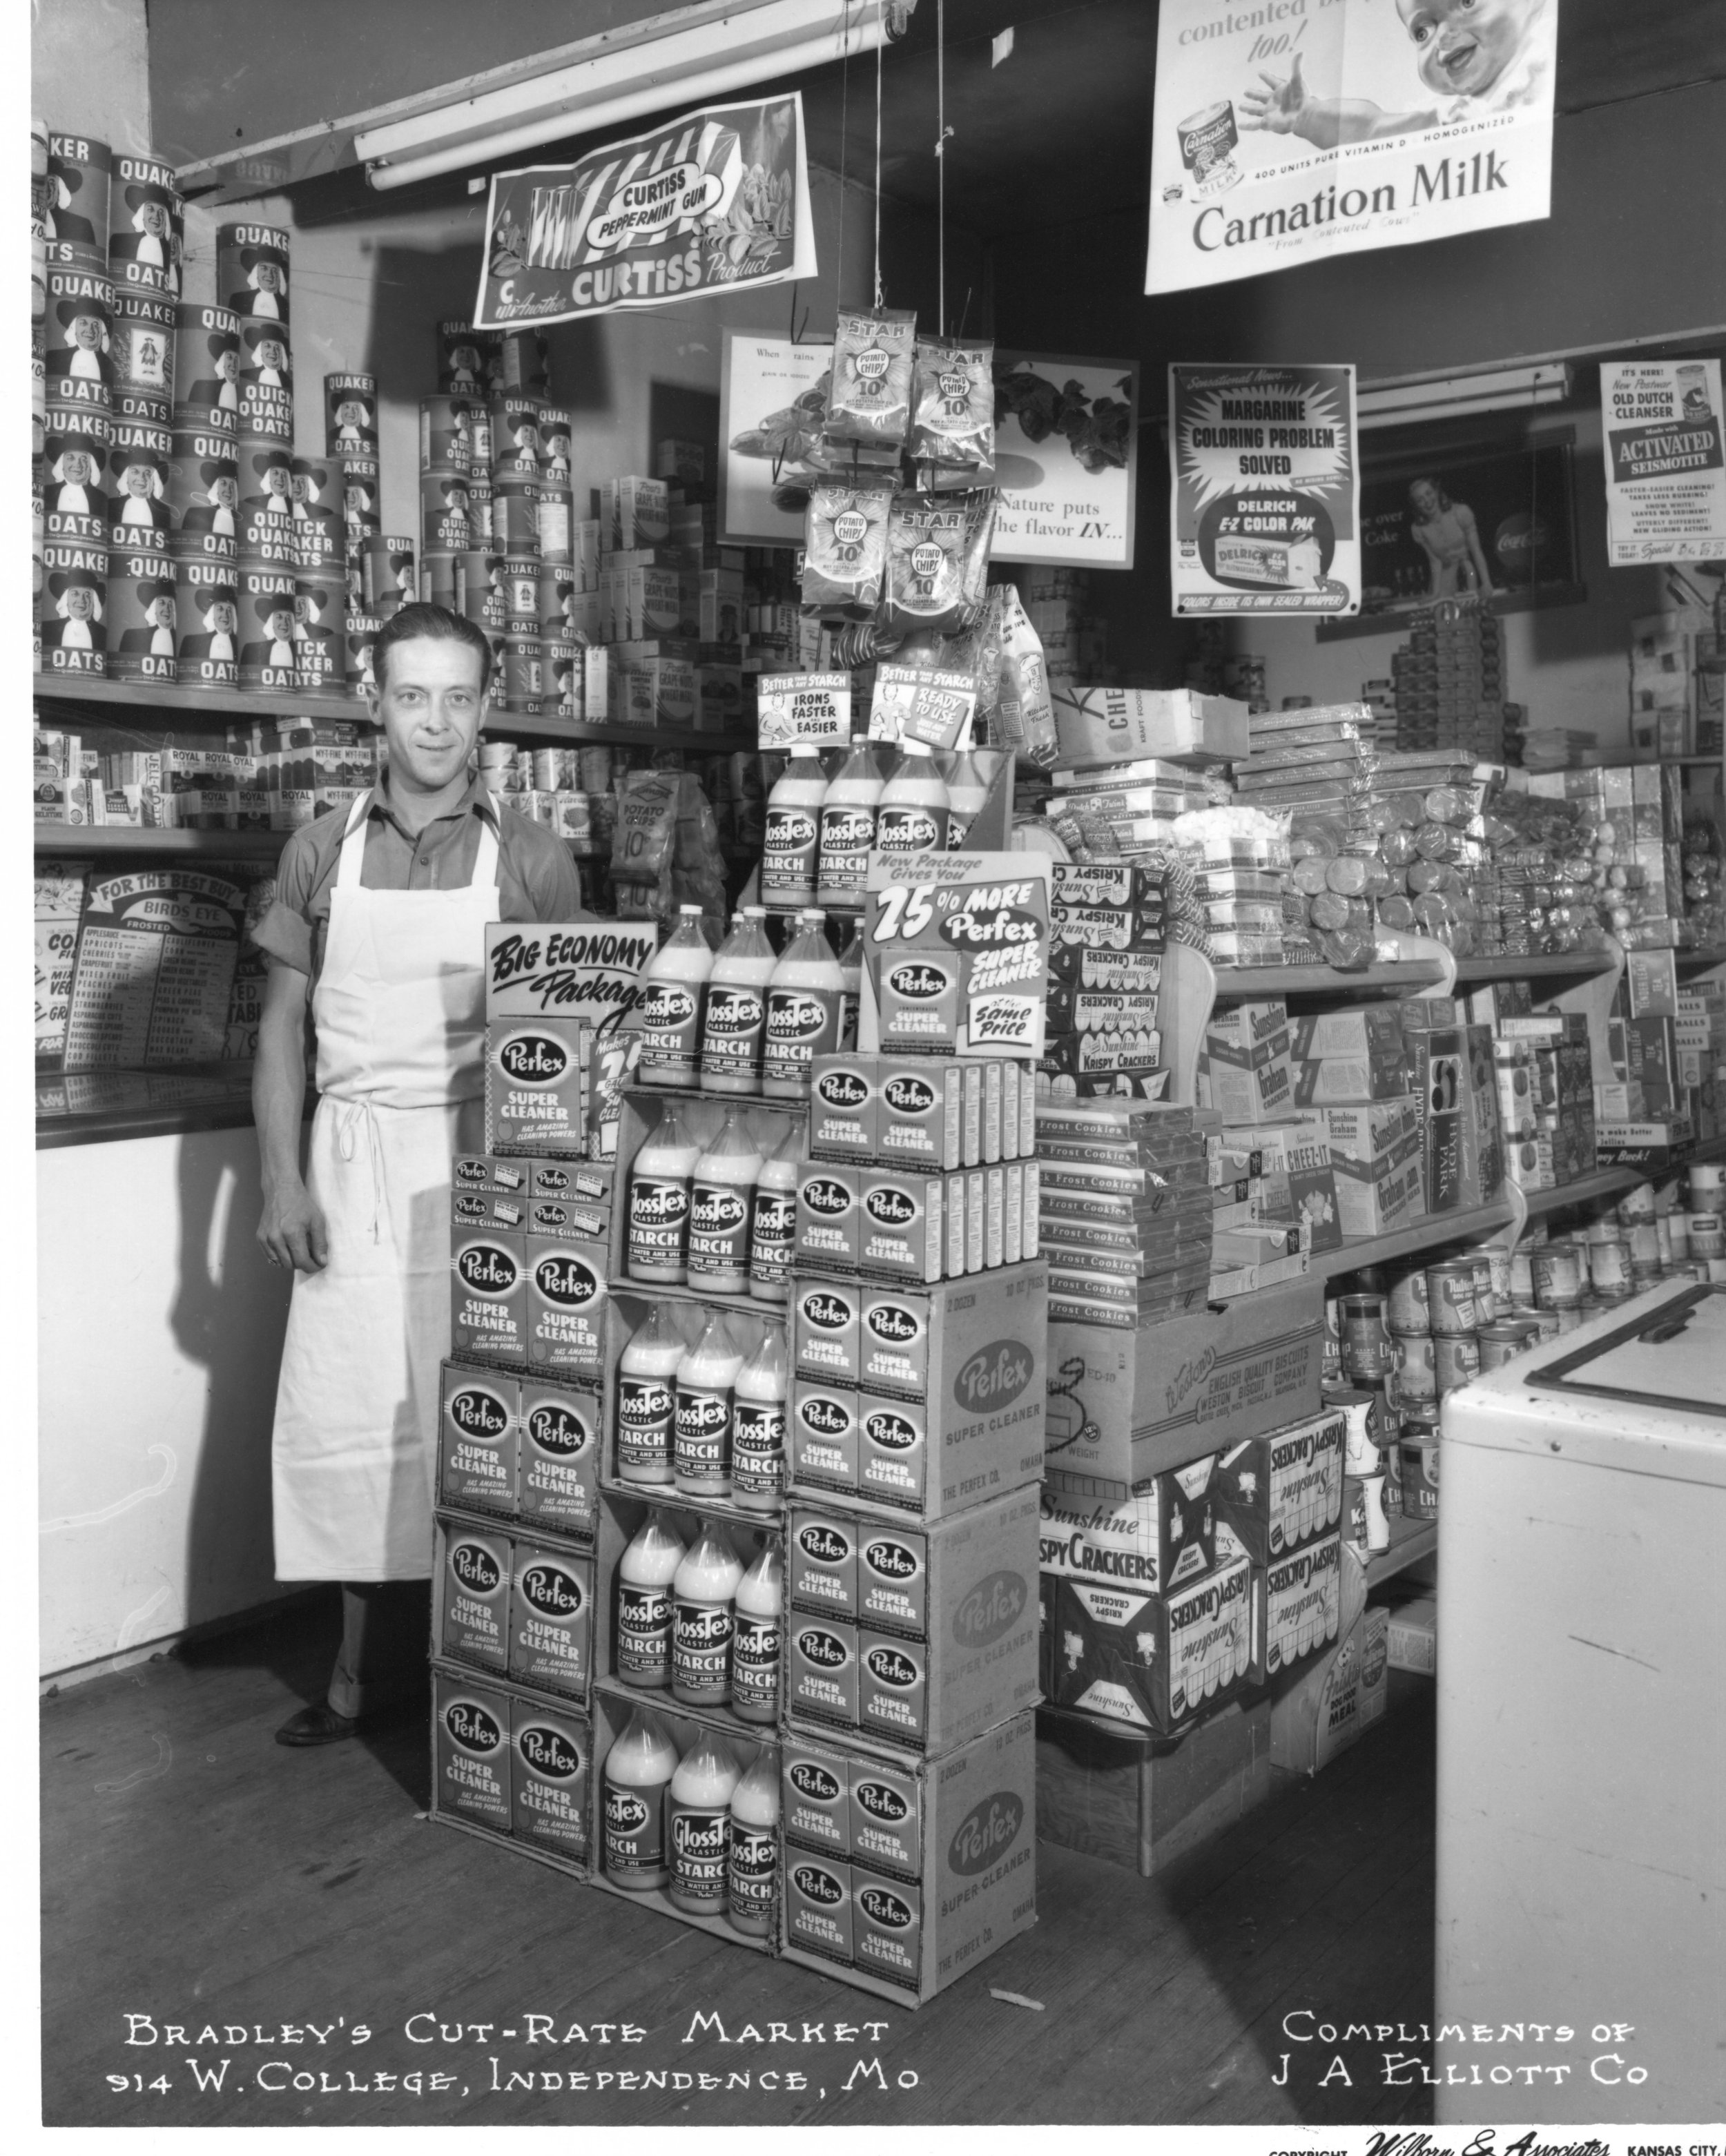 Wilborn Collection Bradley's Cut-Rate Market 914 W. College Indep MO Compliments J. A. Elliott Co. C. Oct 1947 No. 17969.jpg